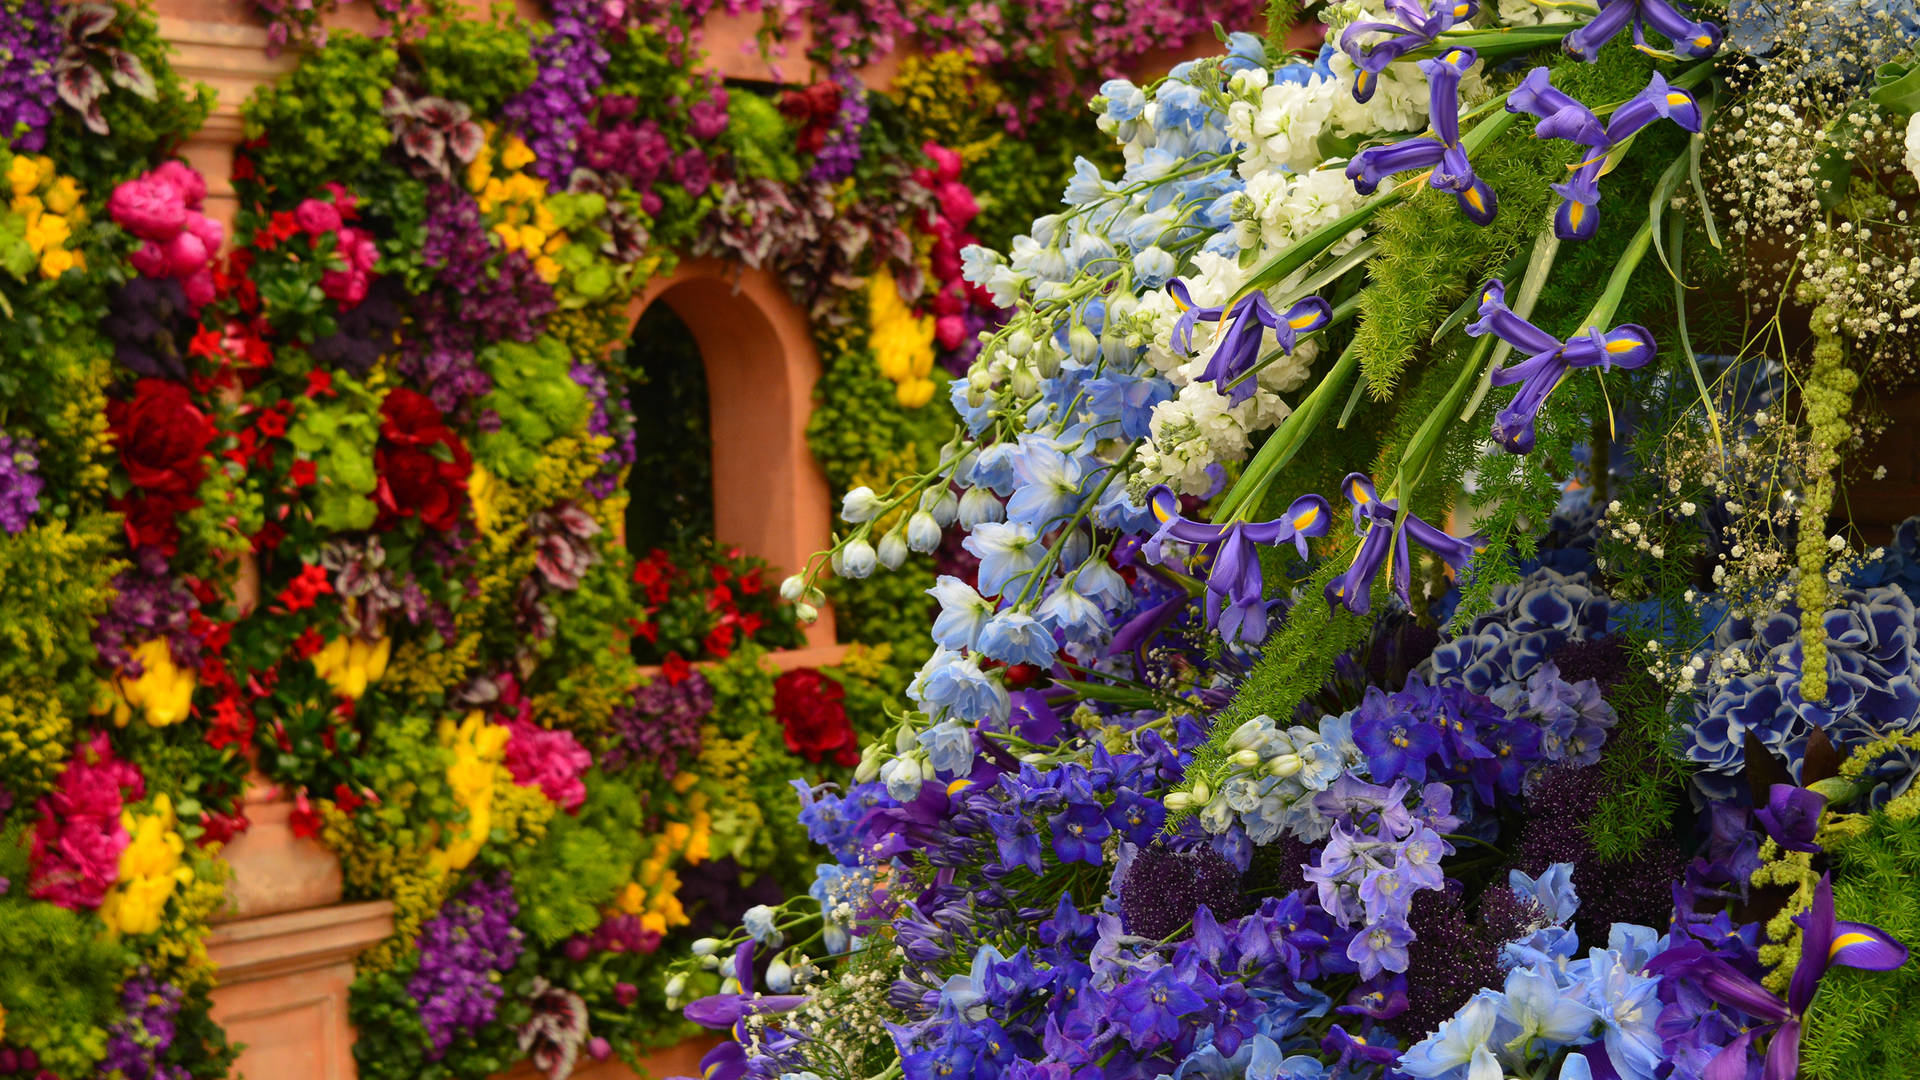 Flowers at the Chelsea Flower Show in London